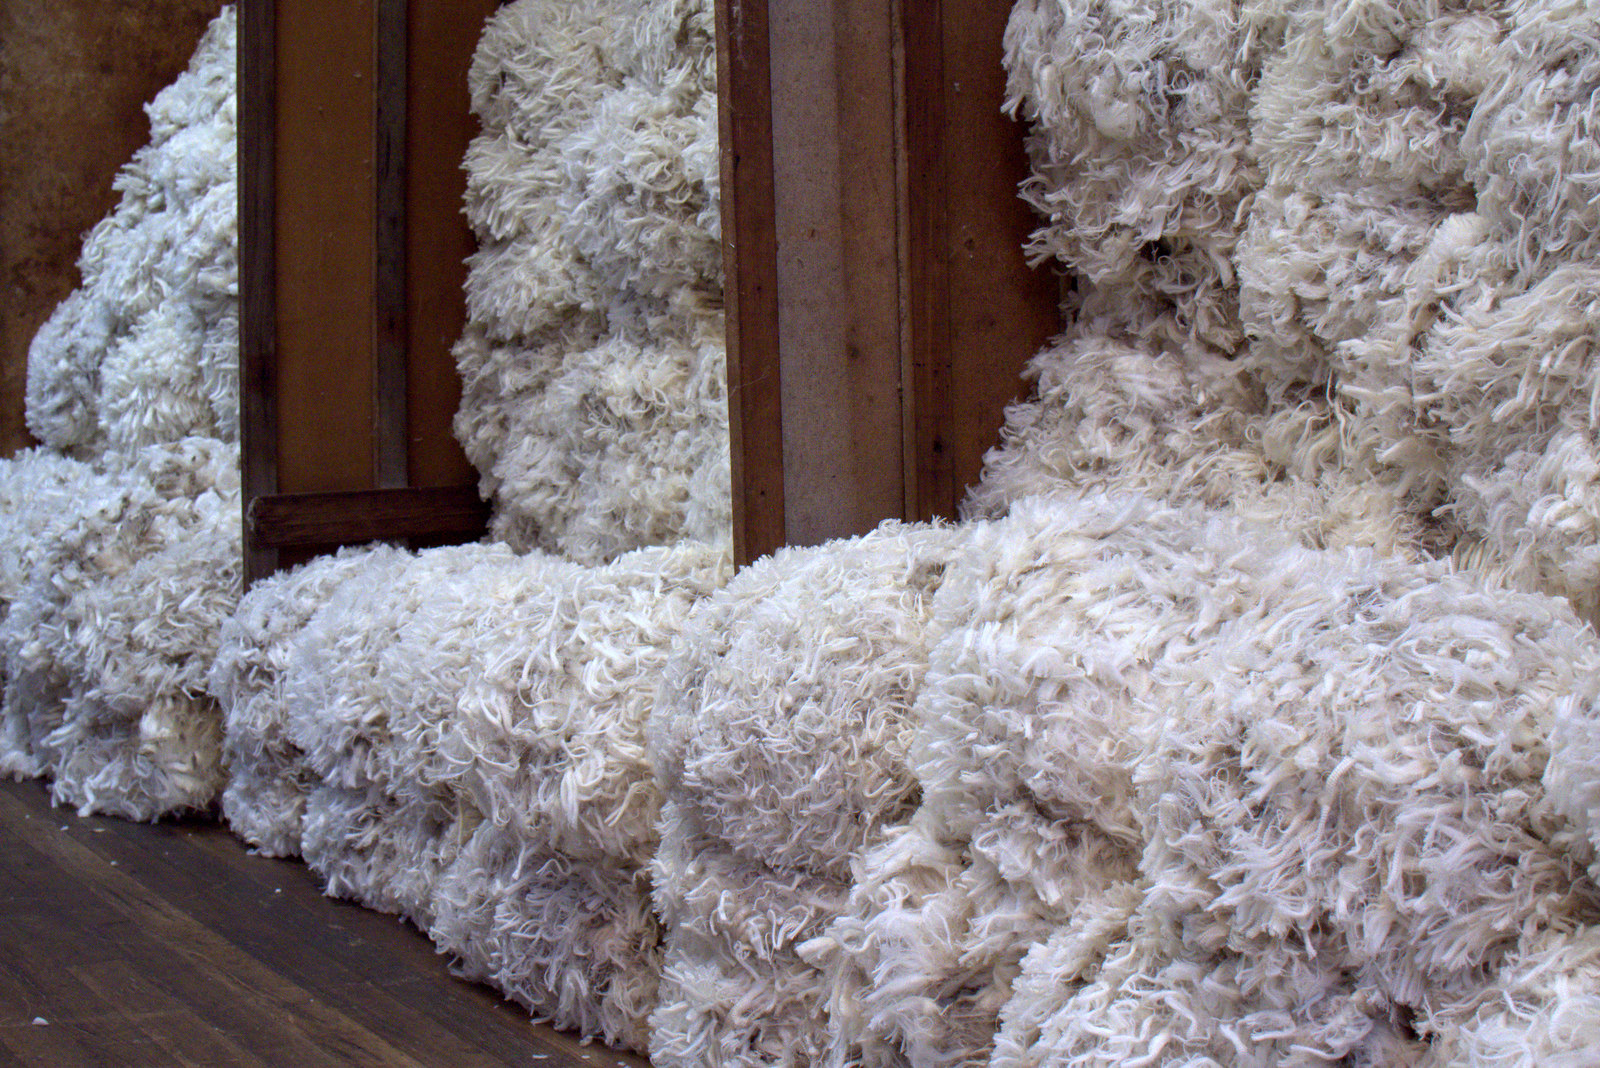 106-DSC_7562full-wool-bin-wrn-shearing.jpg